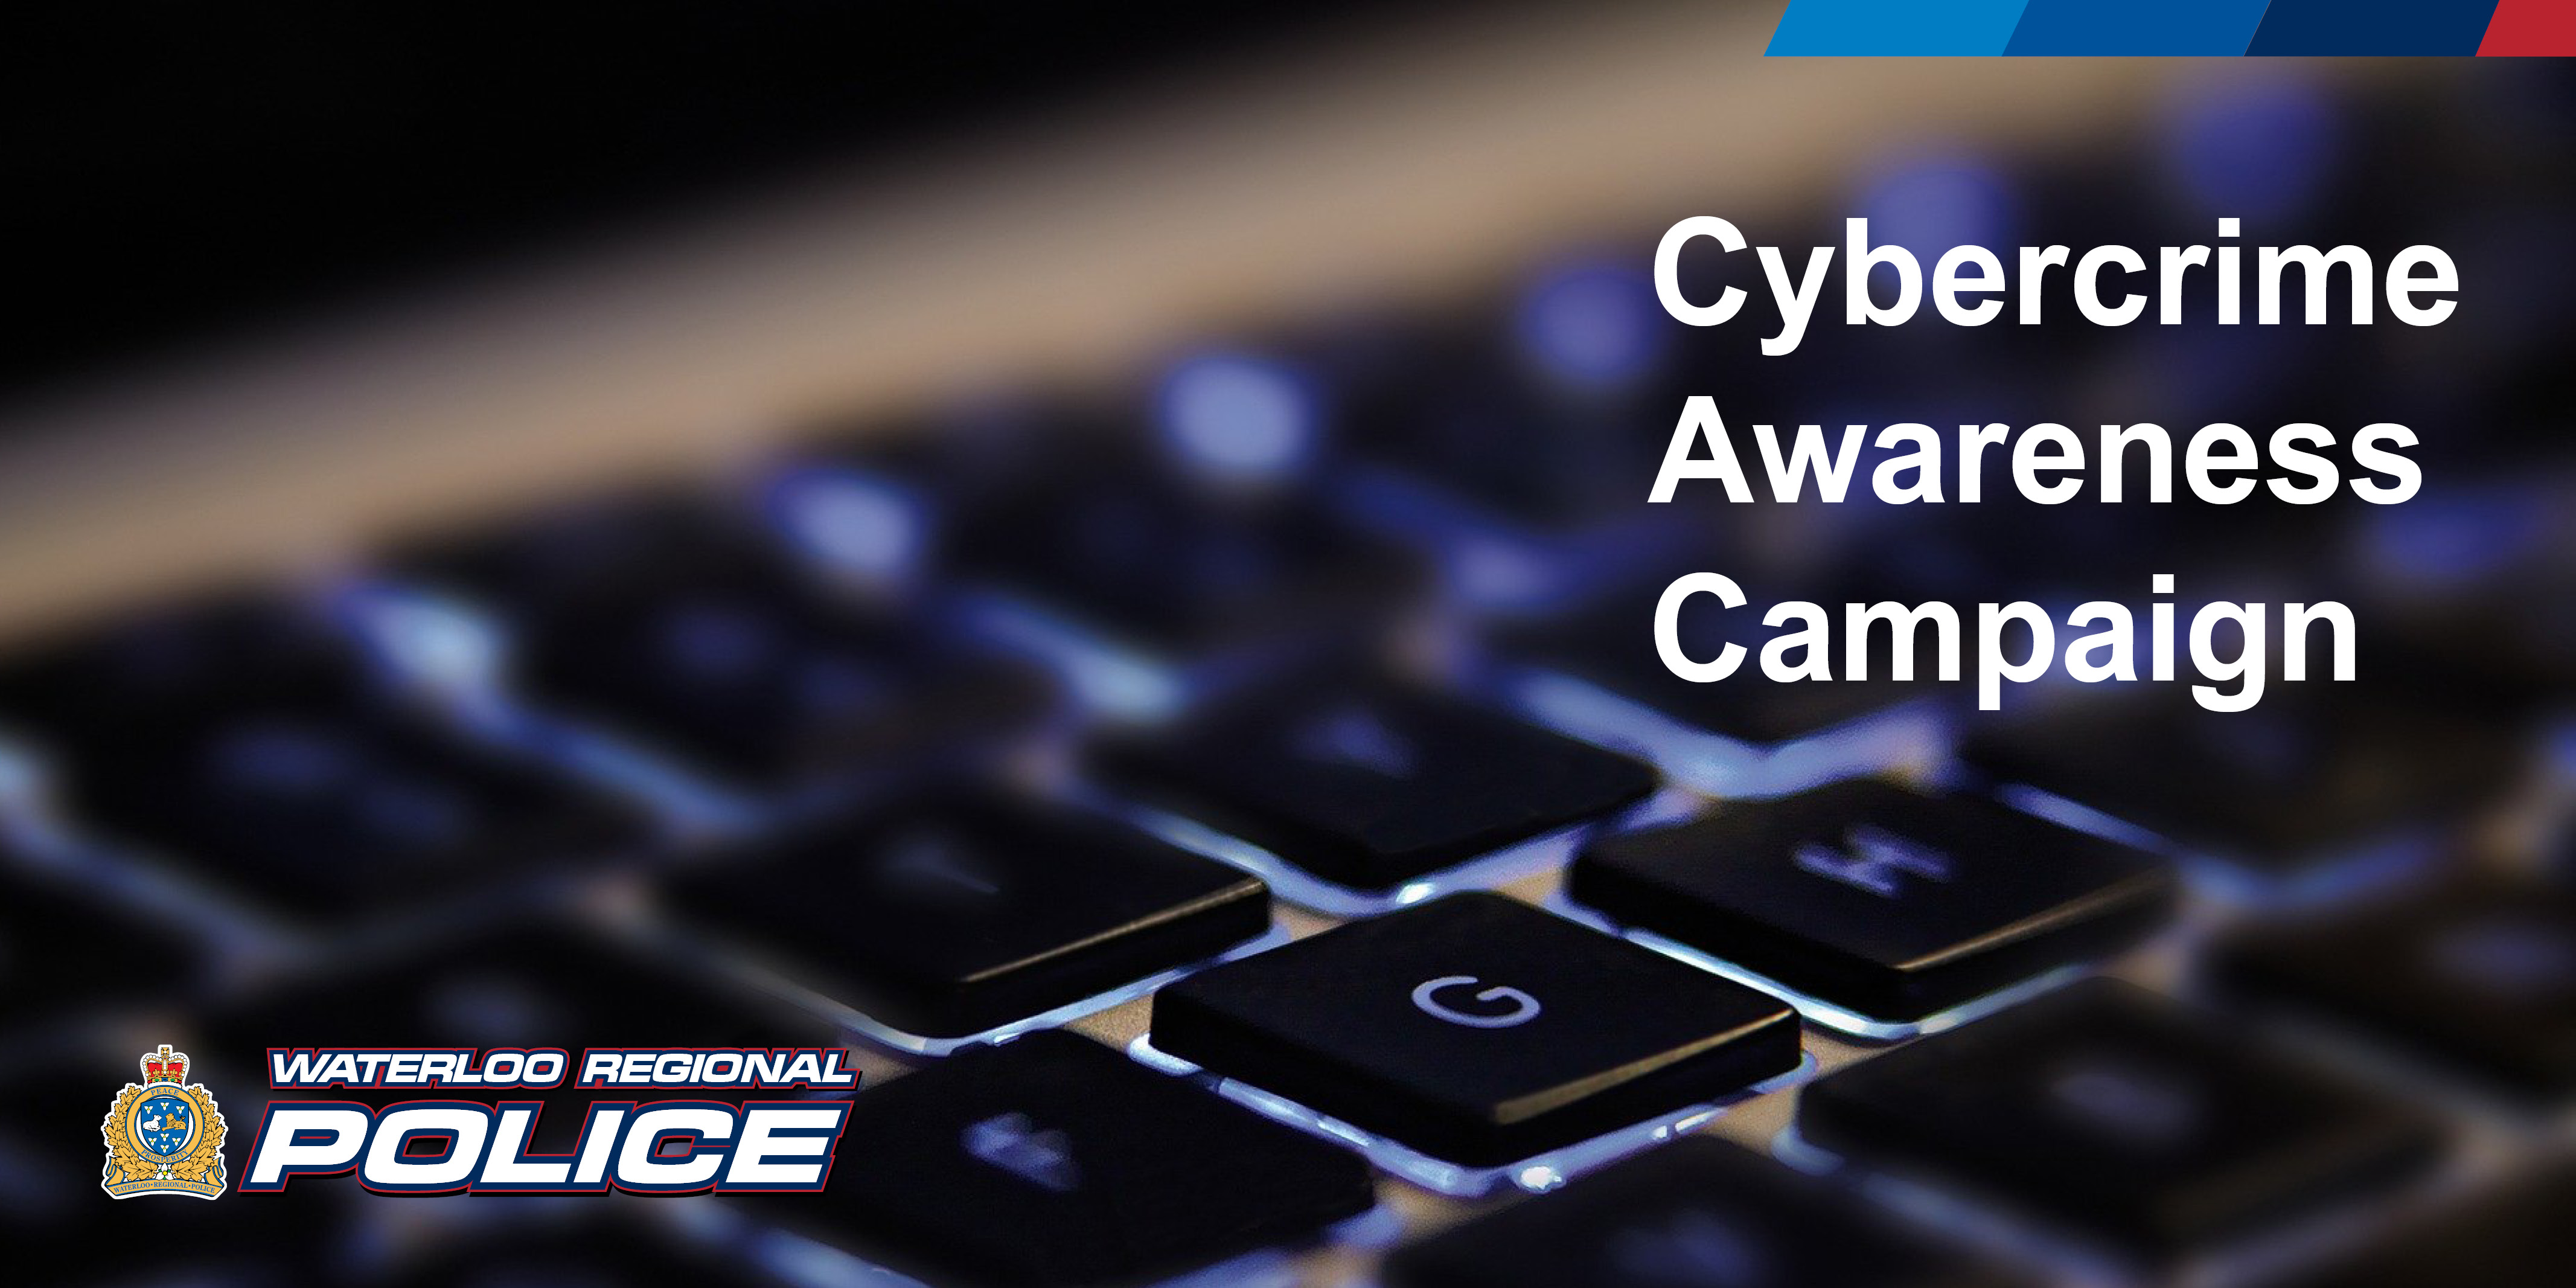 Cybercrime Awareness Campaign